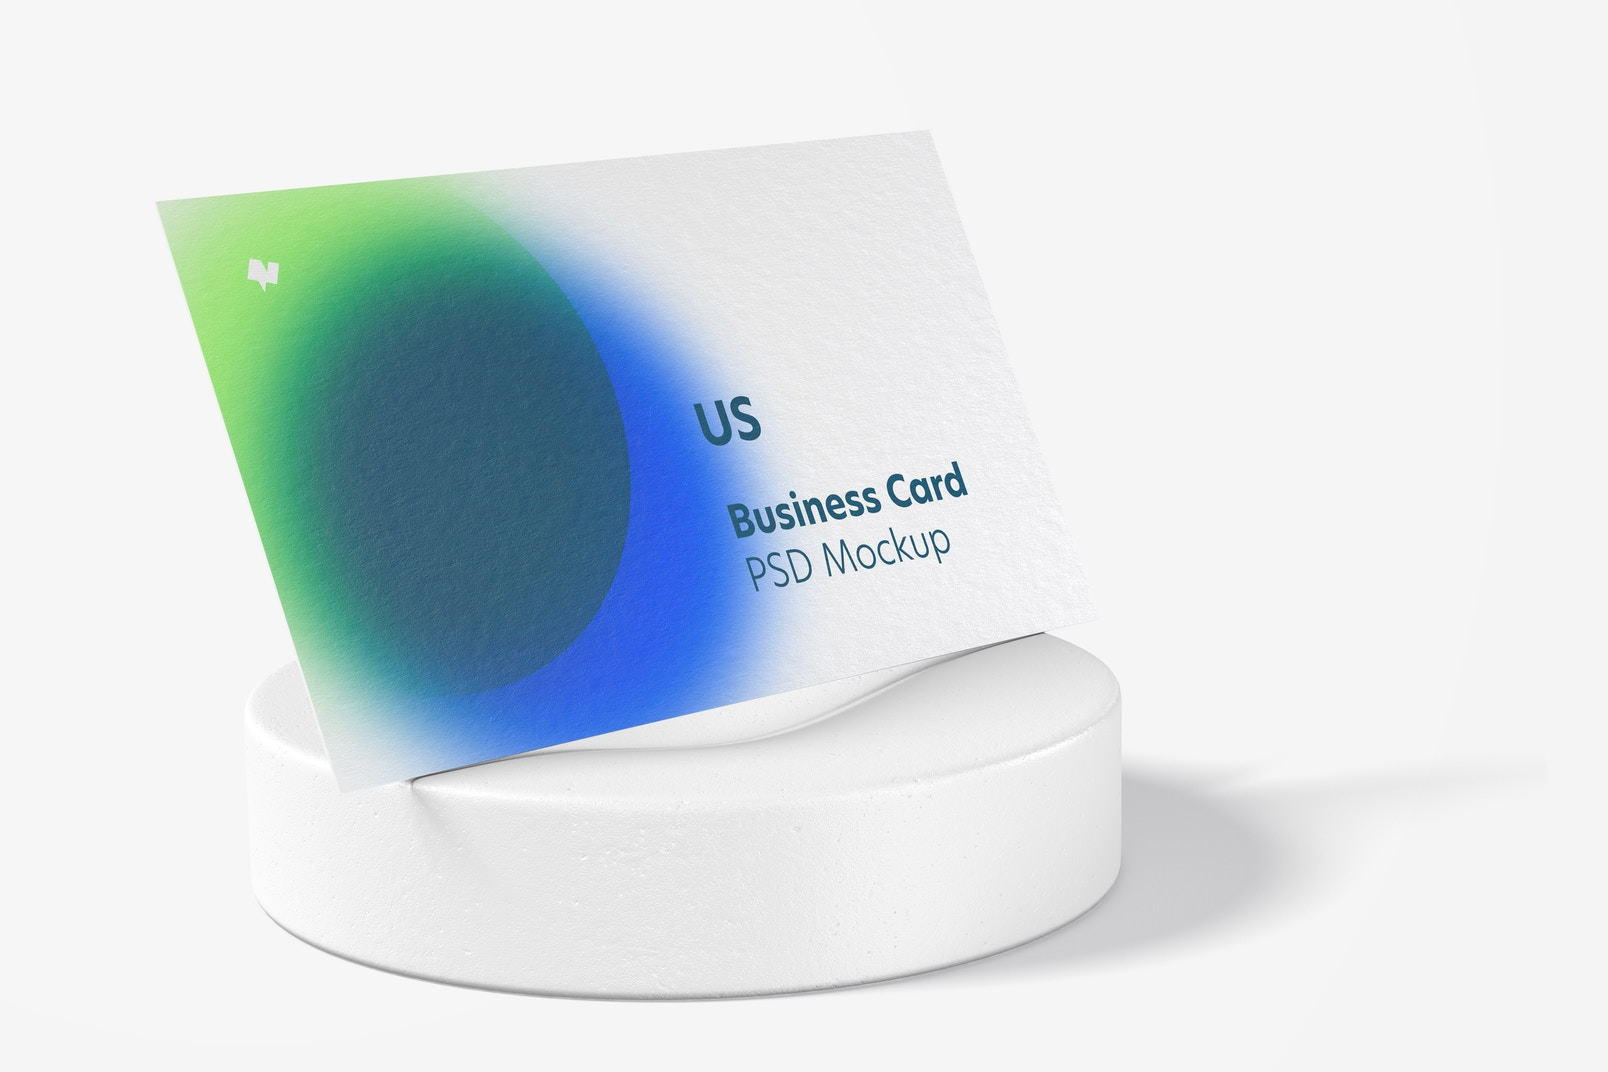 US Landscape Business Card Mockup, Perspective View